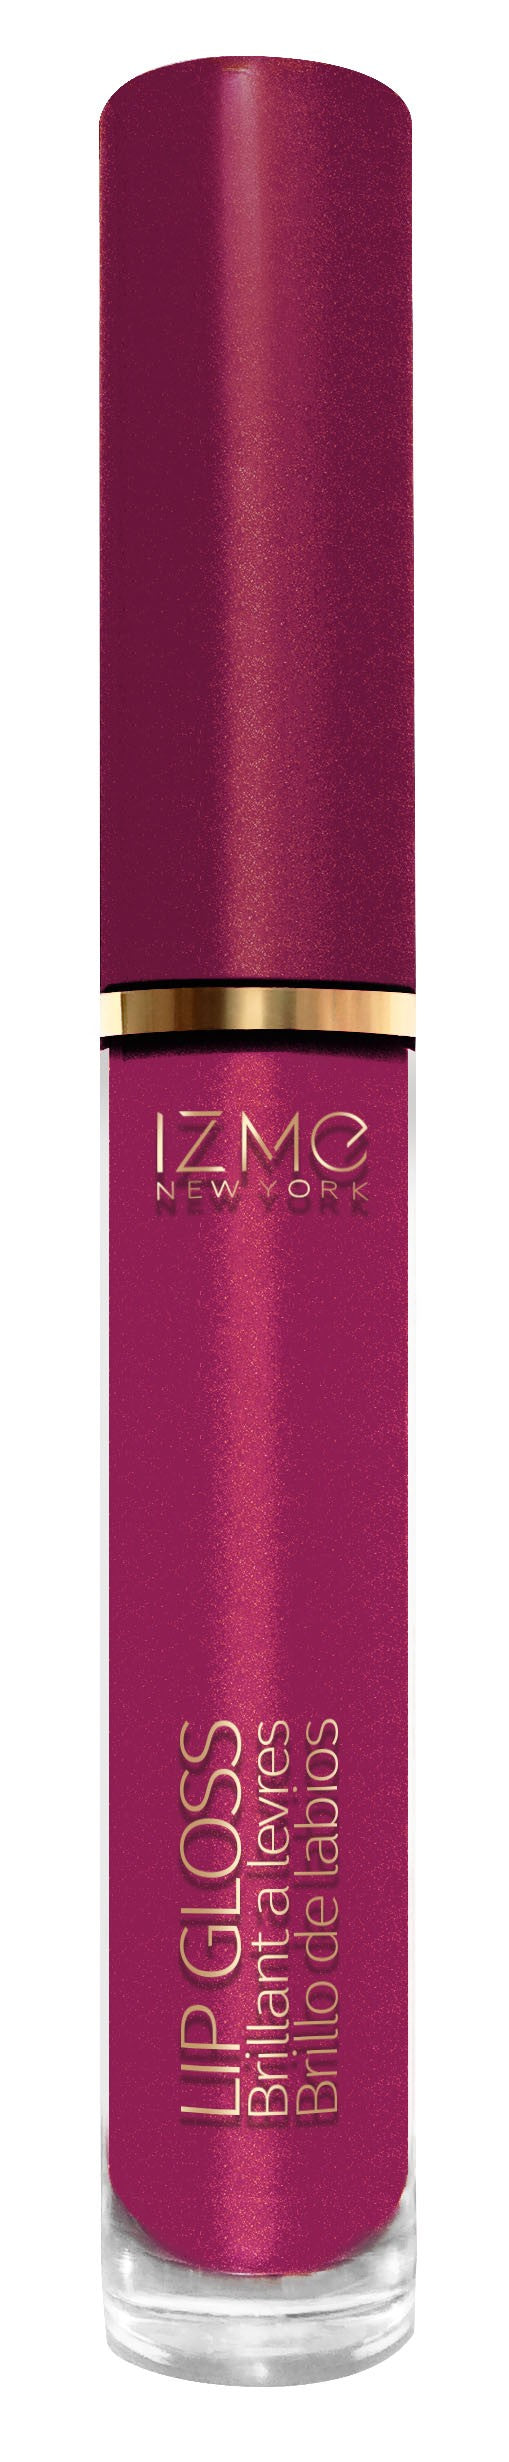 IZME New York Lip Gloss– Olivia